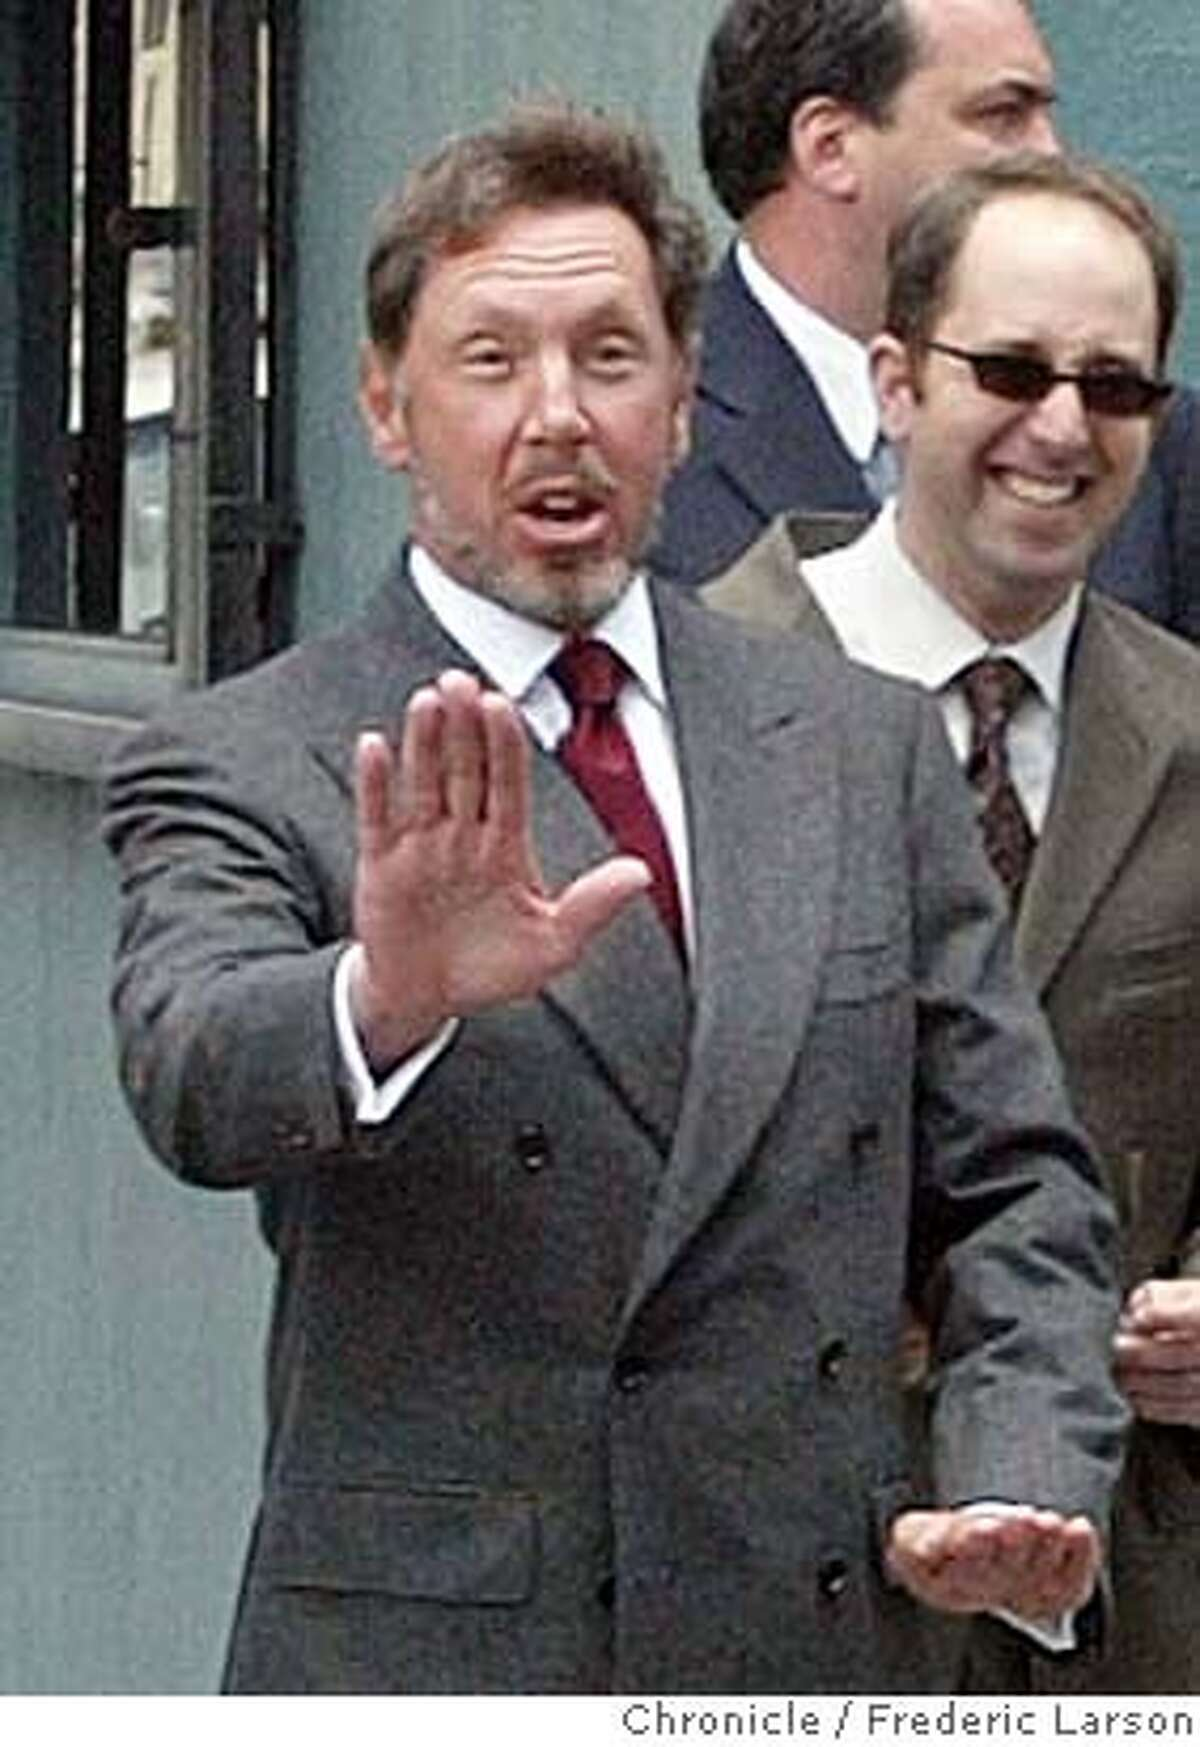 ORACLE_013_fl.jpg; Oracle CEO Larry Ellison directs safety skills to a group of photopraphers as he crosses Larkin at Turk Street before enting the San Francisco Federal Court House to testify for the on going Oracle antitrust. 6/30/04 San Francisco Chronicle Frederic Larson